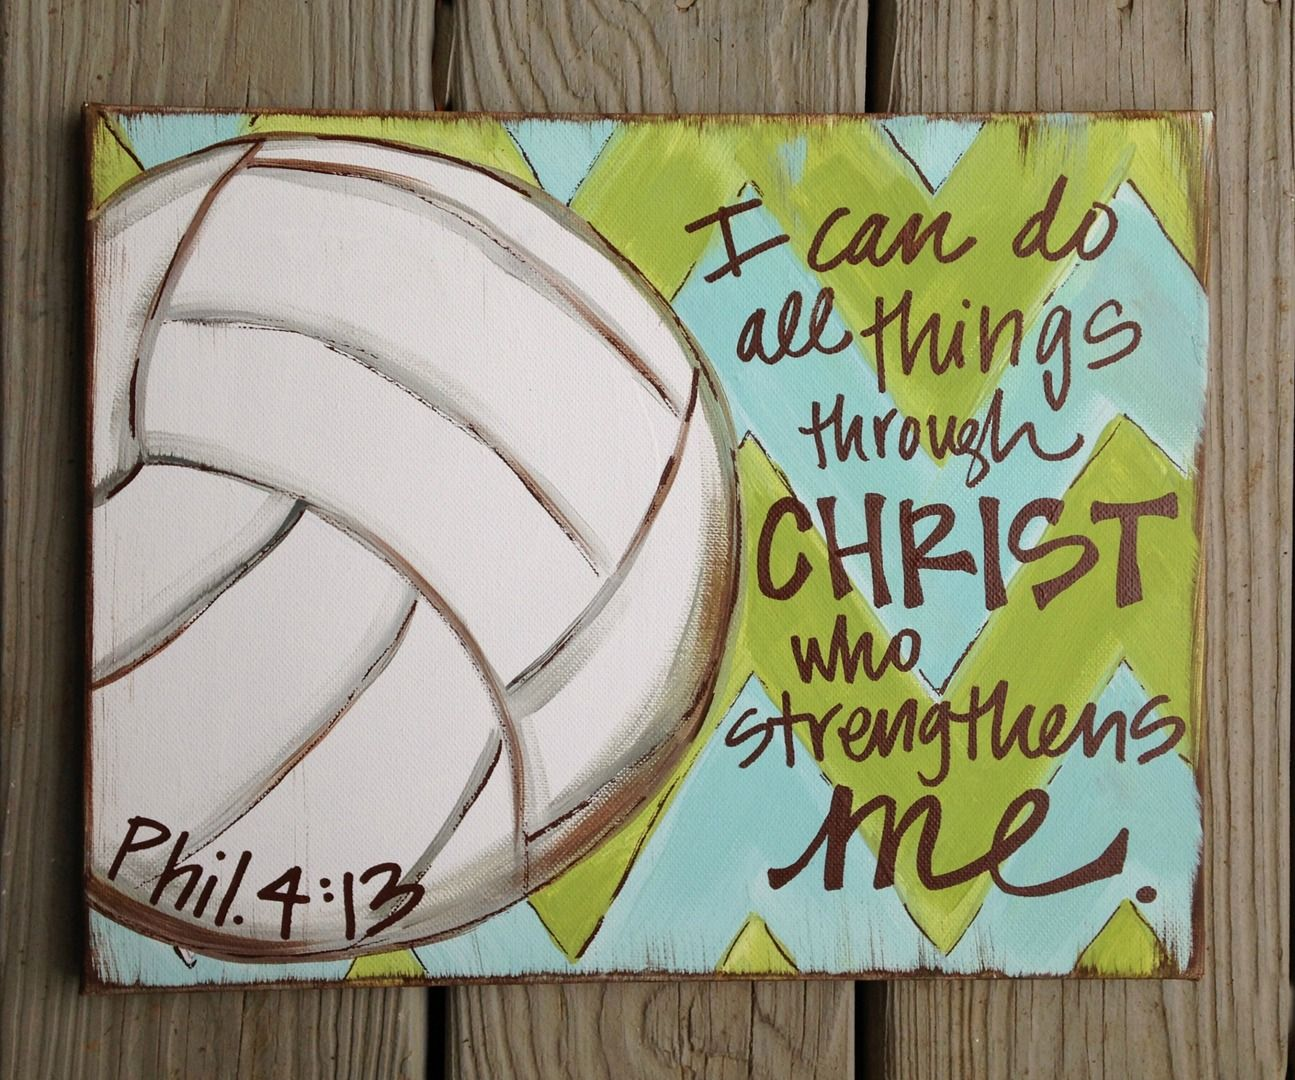 9126f7a48da0811c03354a4ff9eee5af 1 295 1 080 Pixels Volleyball Crafts Volleyball Locker Volleyball Posters